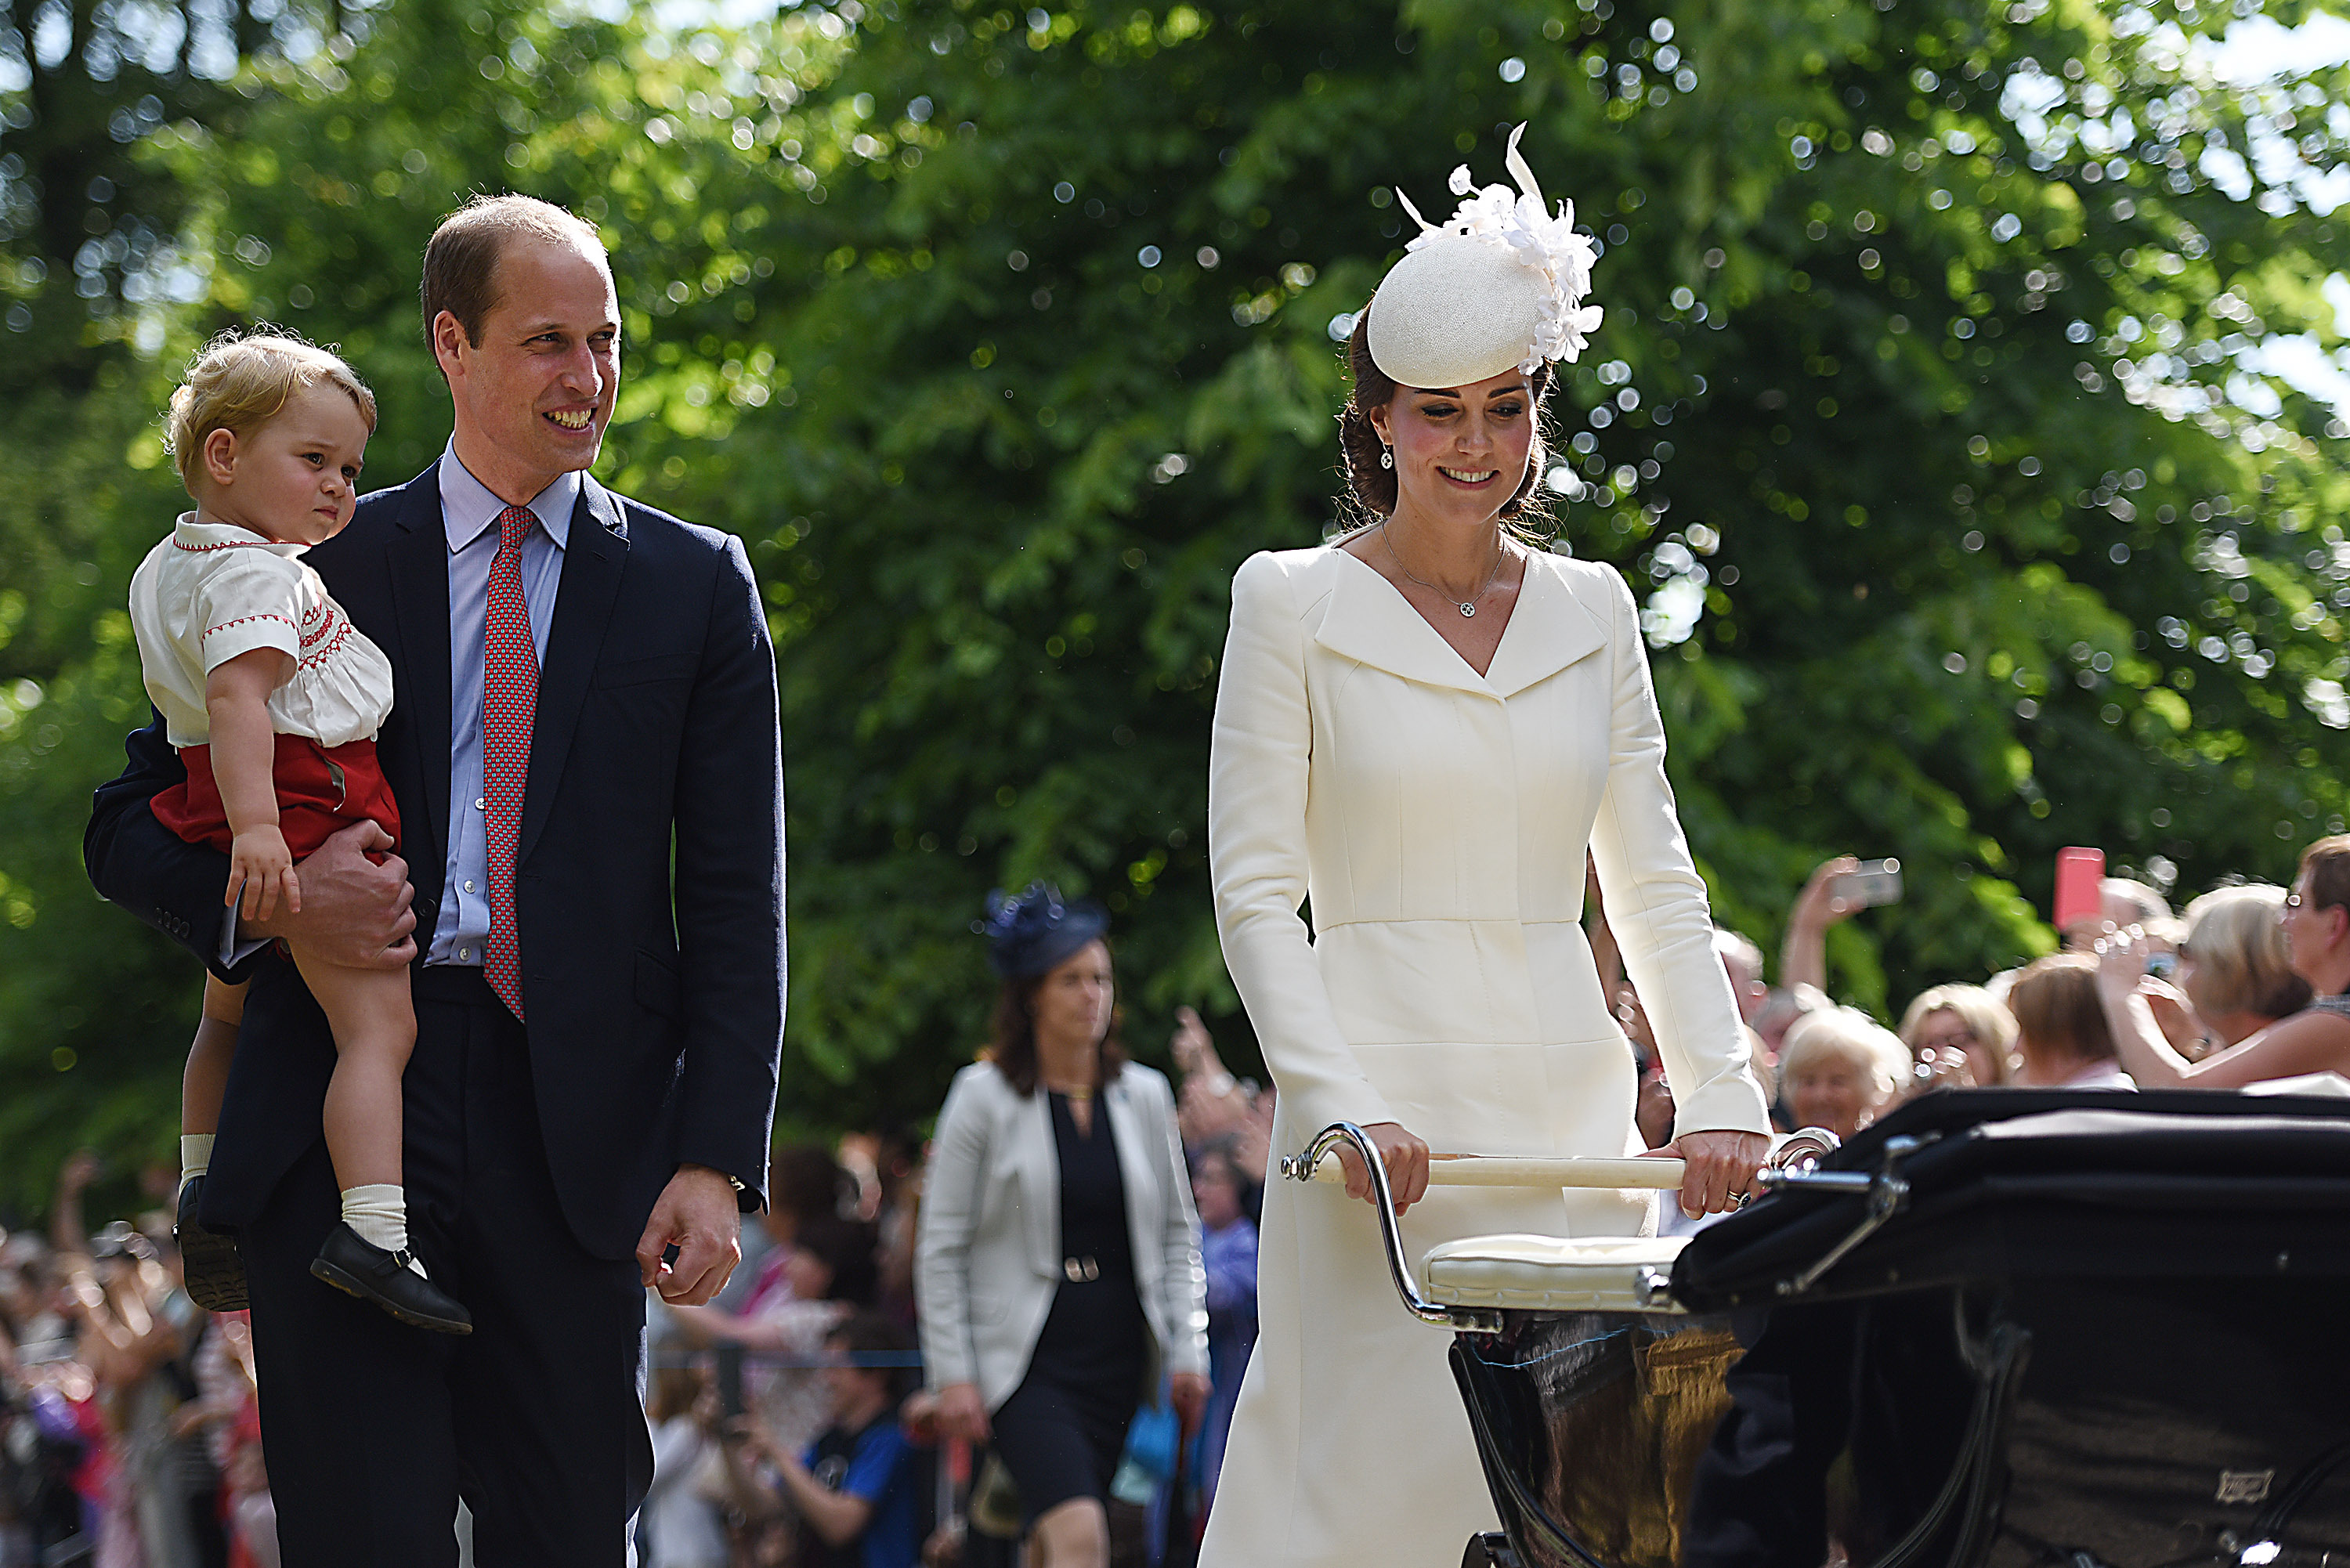 The Duke and Duchess of Cambridge with Prince George and Princess Charlotte (in pram) as they leave the Church of St Mary Magdalene in Sandringham, Norfolk, after Charlotte's christening (Mark Turner/PA)